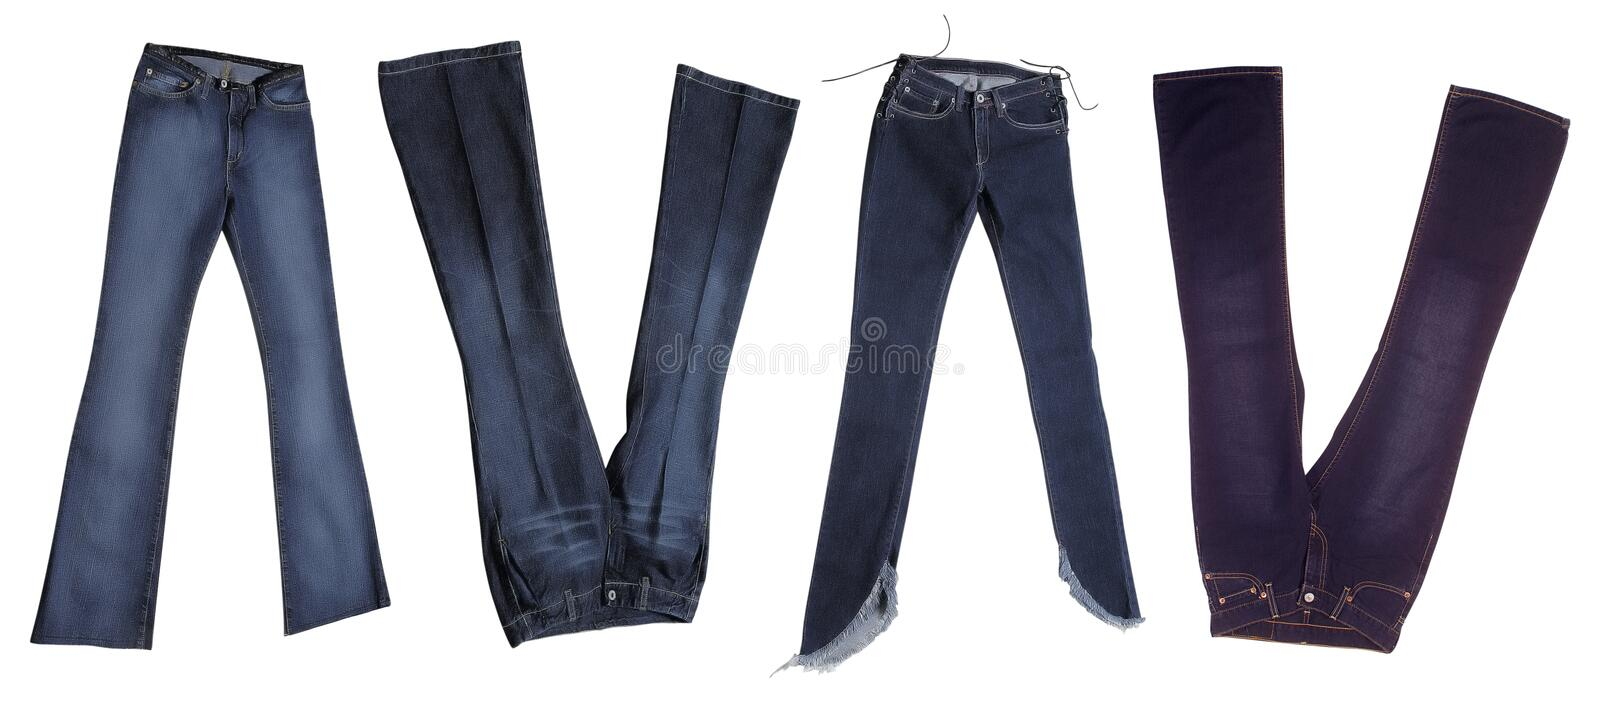 Download Jeans stock image. Image of retail, cotton, outfit, nobody - 15242337